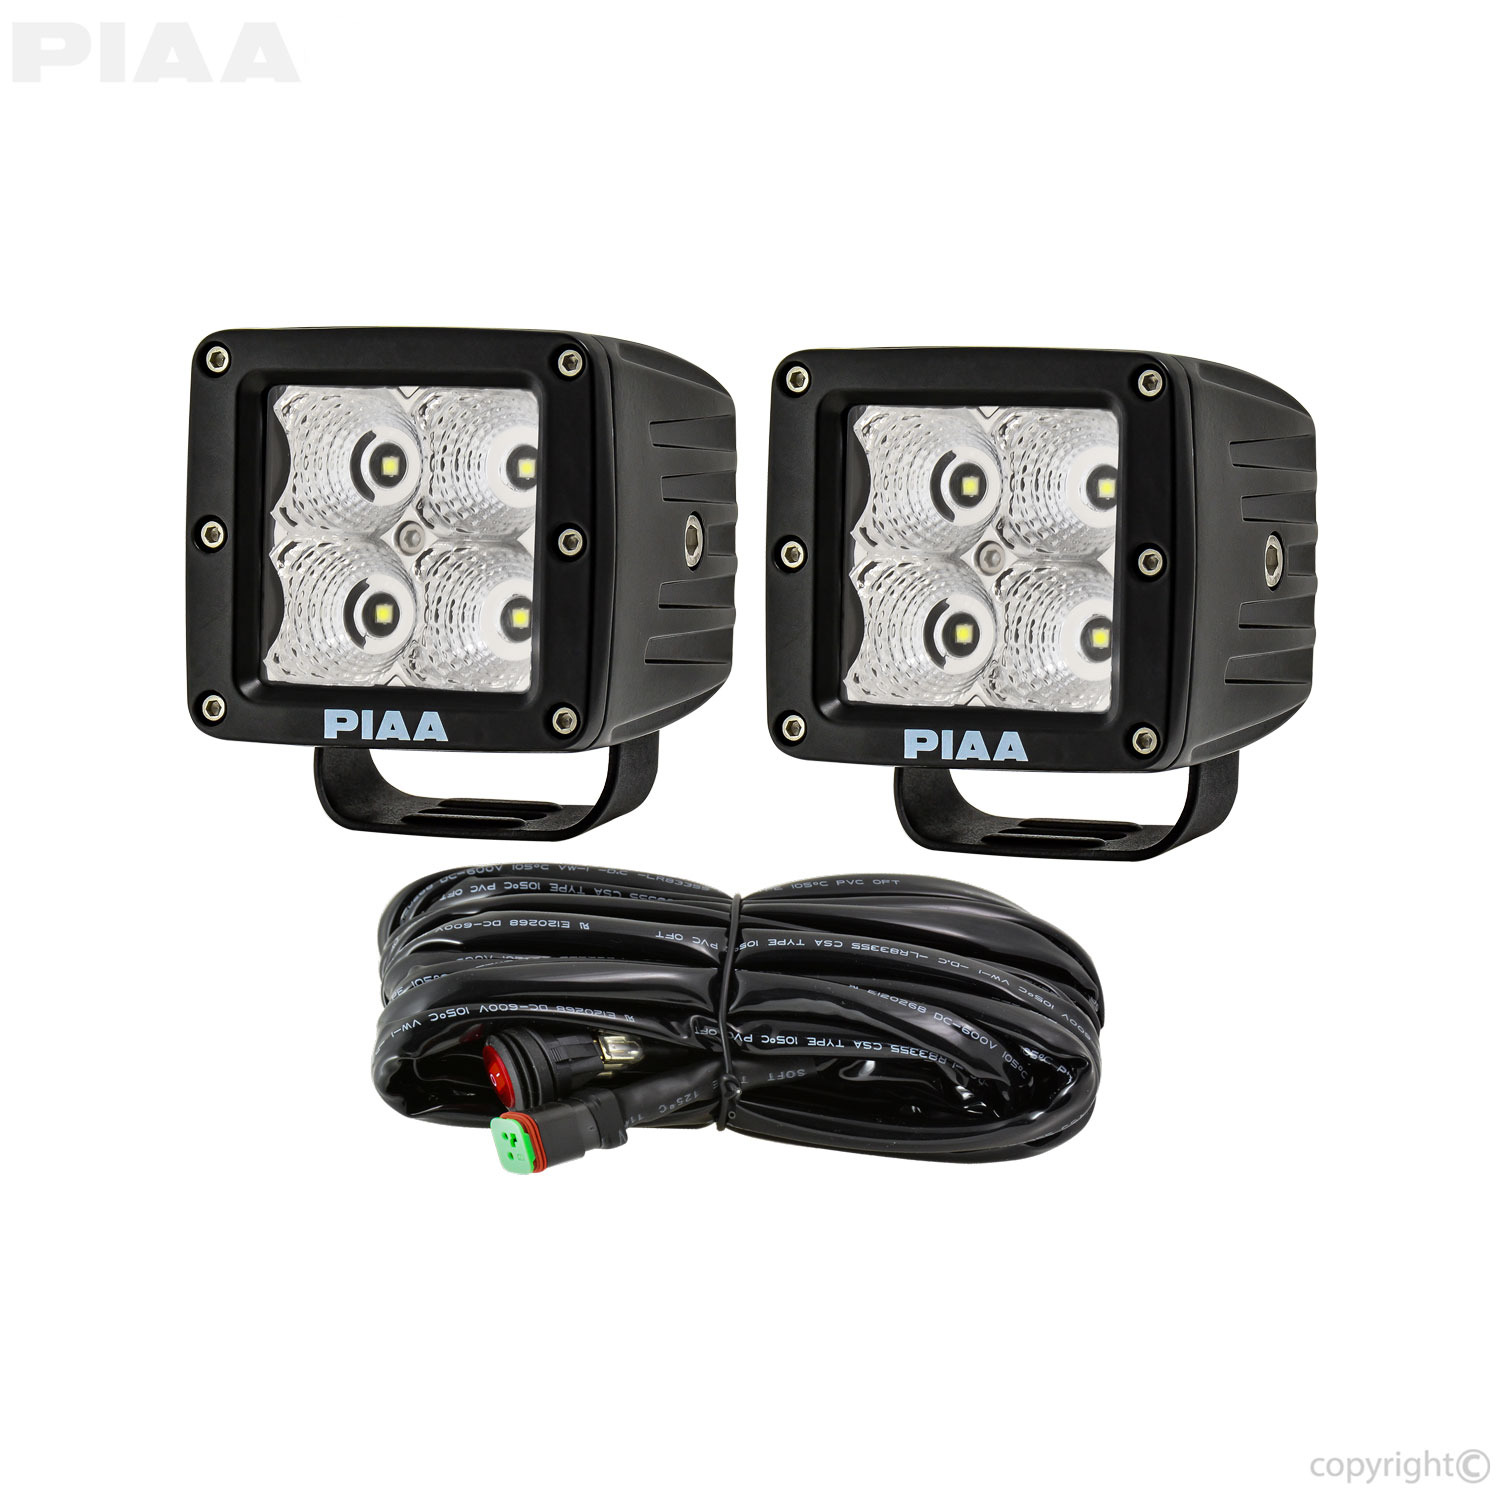 piaa 26 06303 quad contents hr?lr=t&bw=1000&w=1000&bh=1000&h=1000 piaa fog light wiring harness piaa ion crystal coating technology piaa fog light wiring harness at virtualis.co